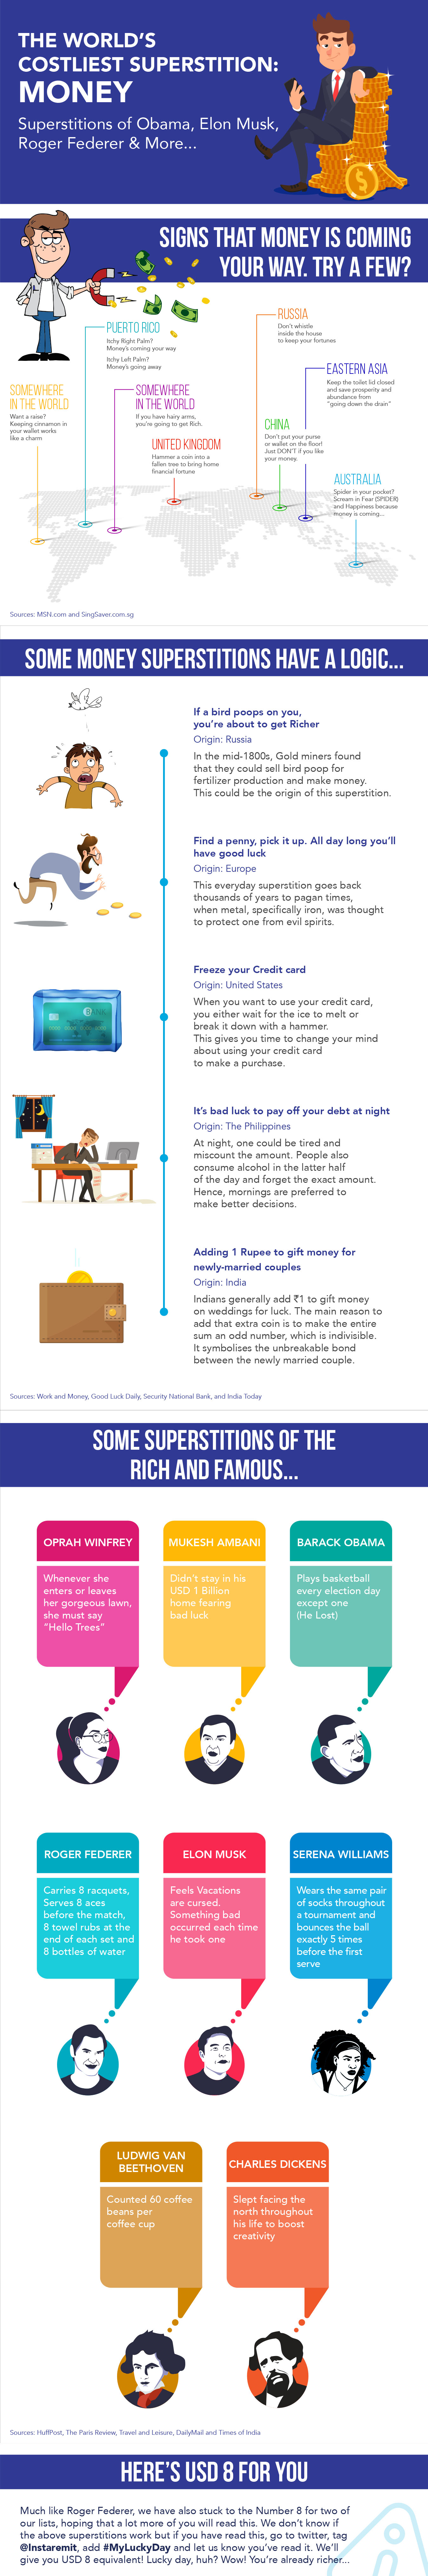 8 Signs That Indicate You May Be Getting Richer